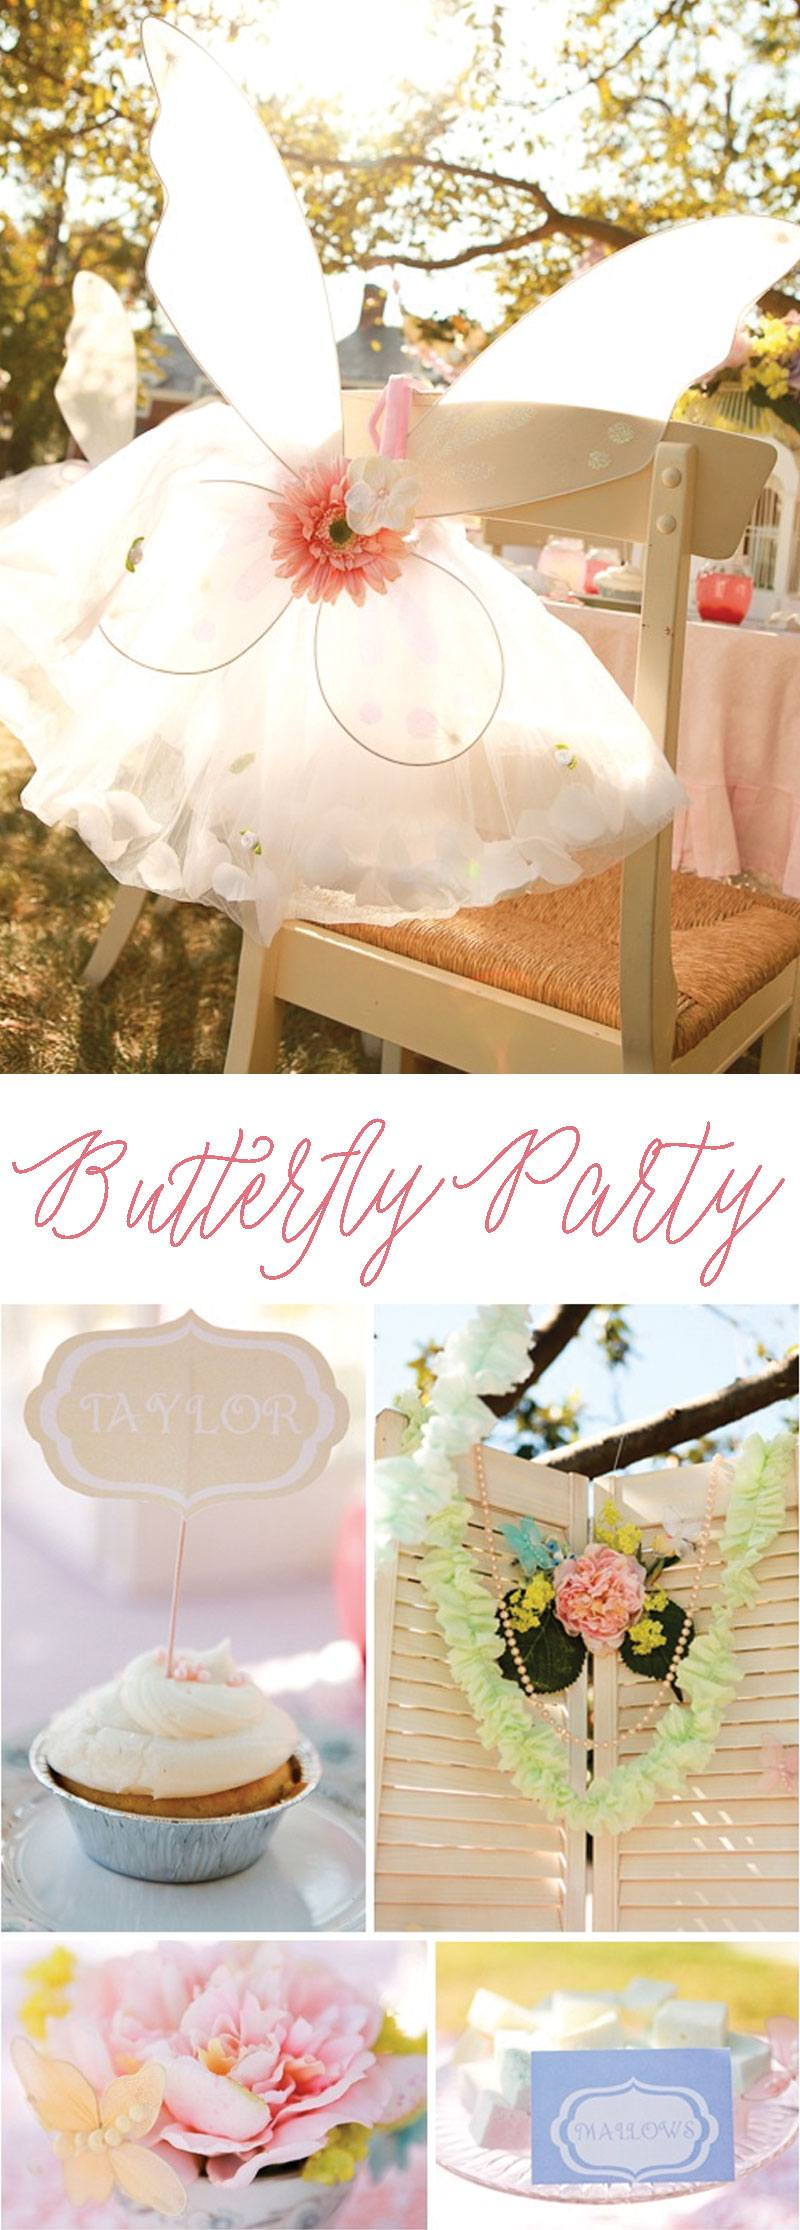 Vintage Butterfly Party by Lindi Haws of Love The Day